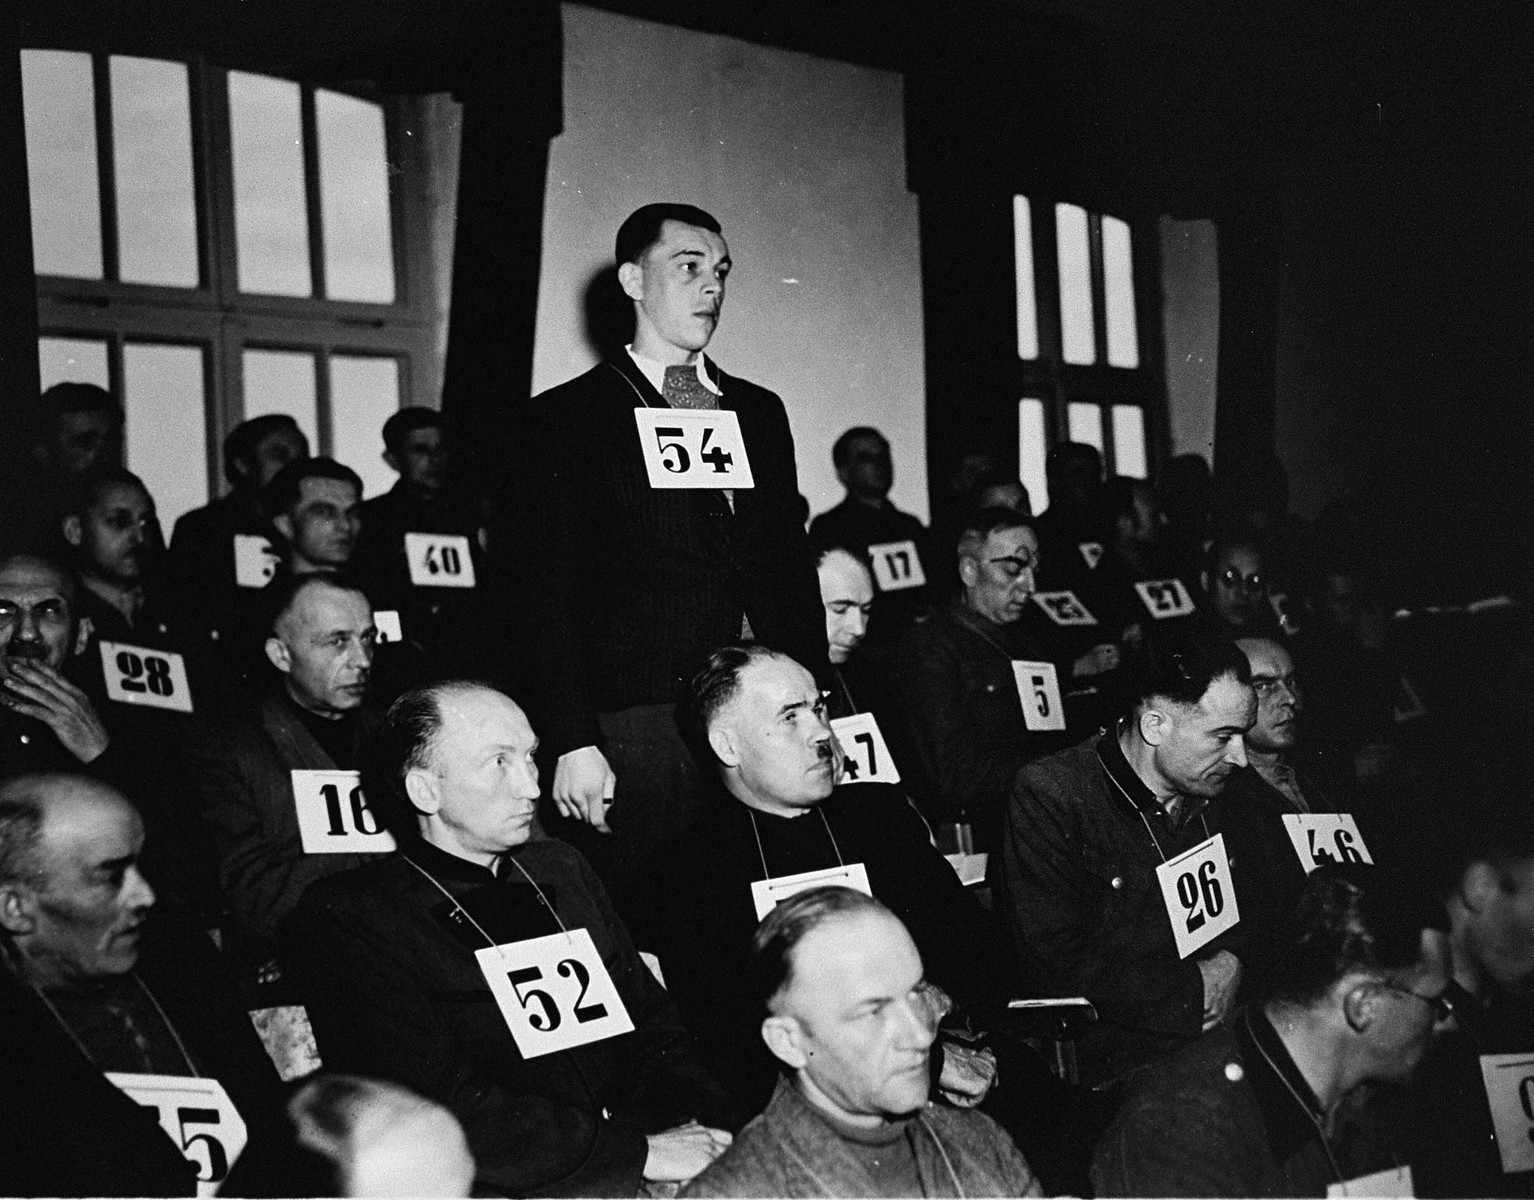 Former SS-Unterscharfuehrer Andreas Trumm, a defendant at the trial of 61 former camp personnel and prisoners from Mauthausen, stands in his place in the defendants' dock.    Trumm was convicted and sentenced to death on May 13, 1946.